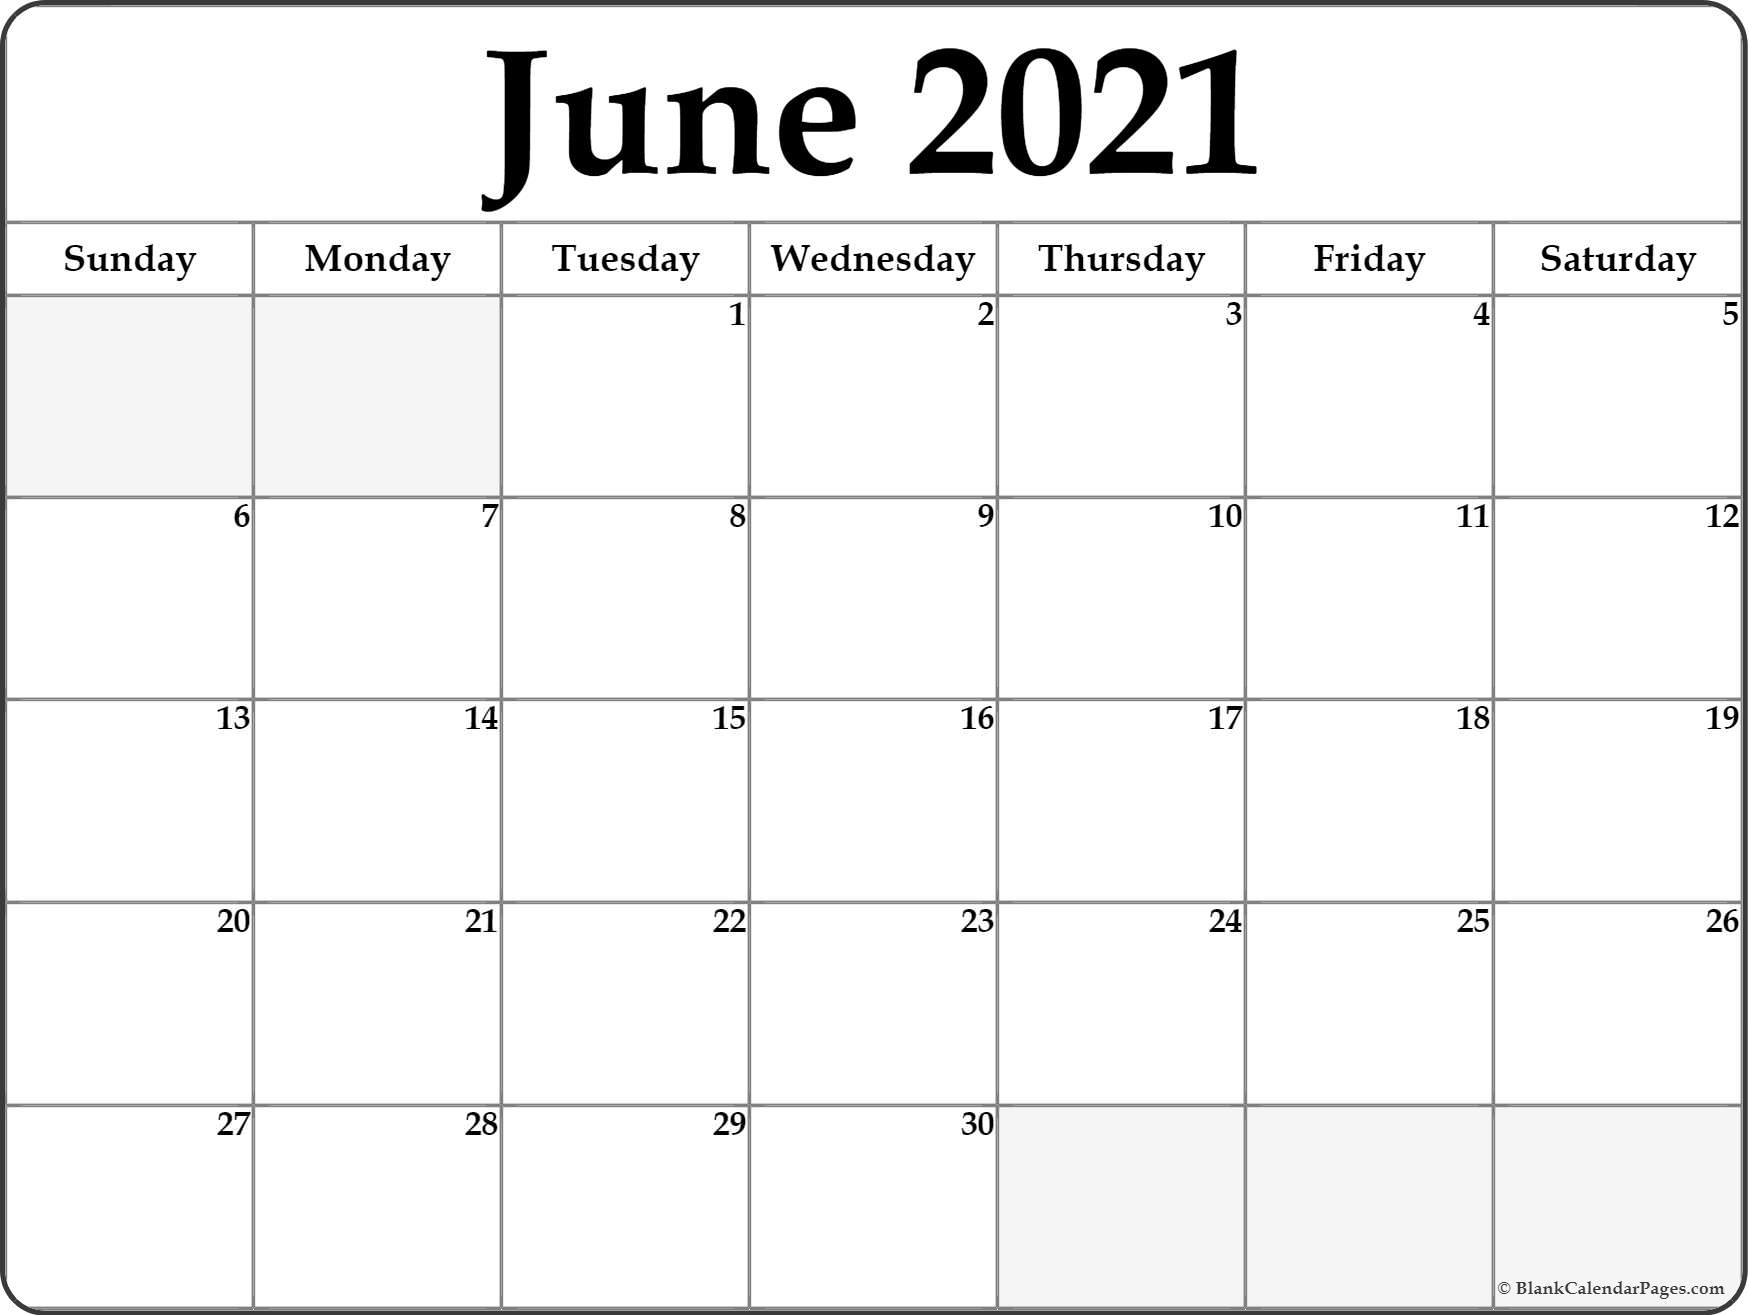 Get 2021 June Calendars To Print Without Downloading